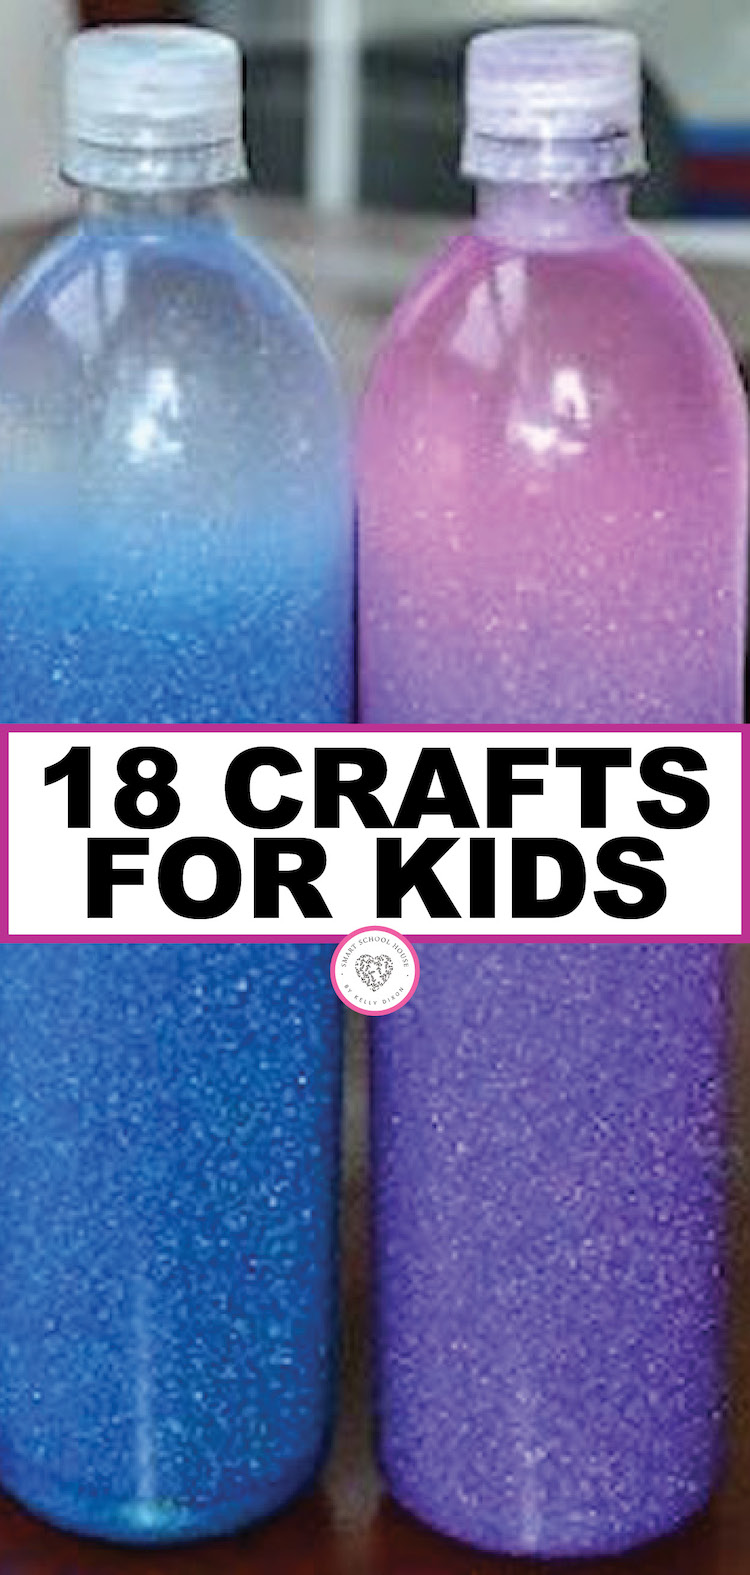 DIY craft ideas for kids!